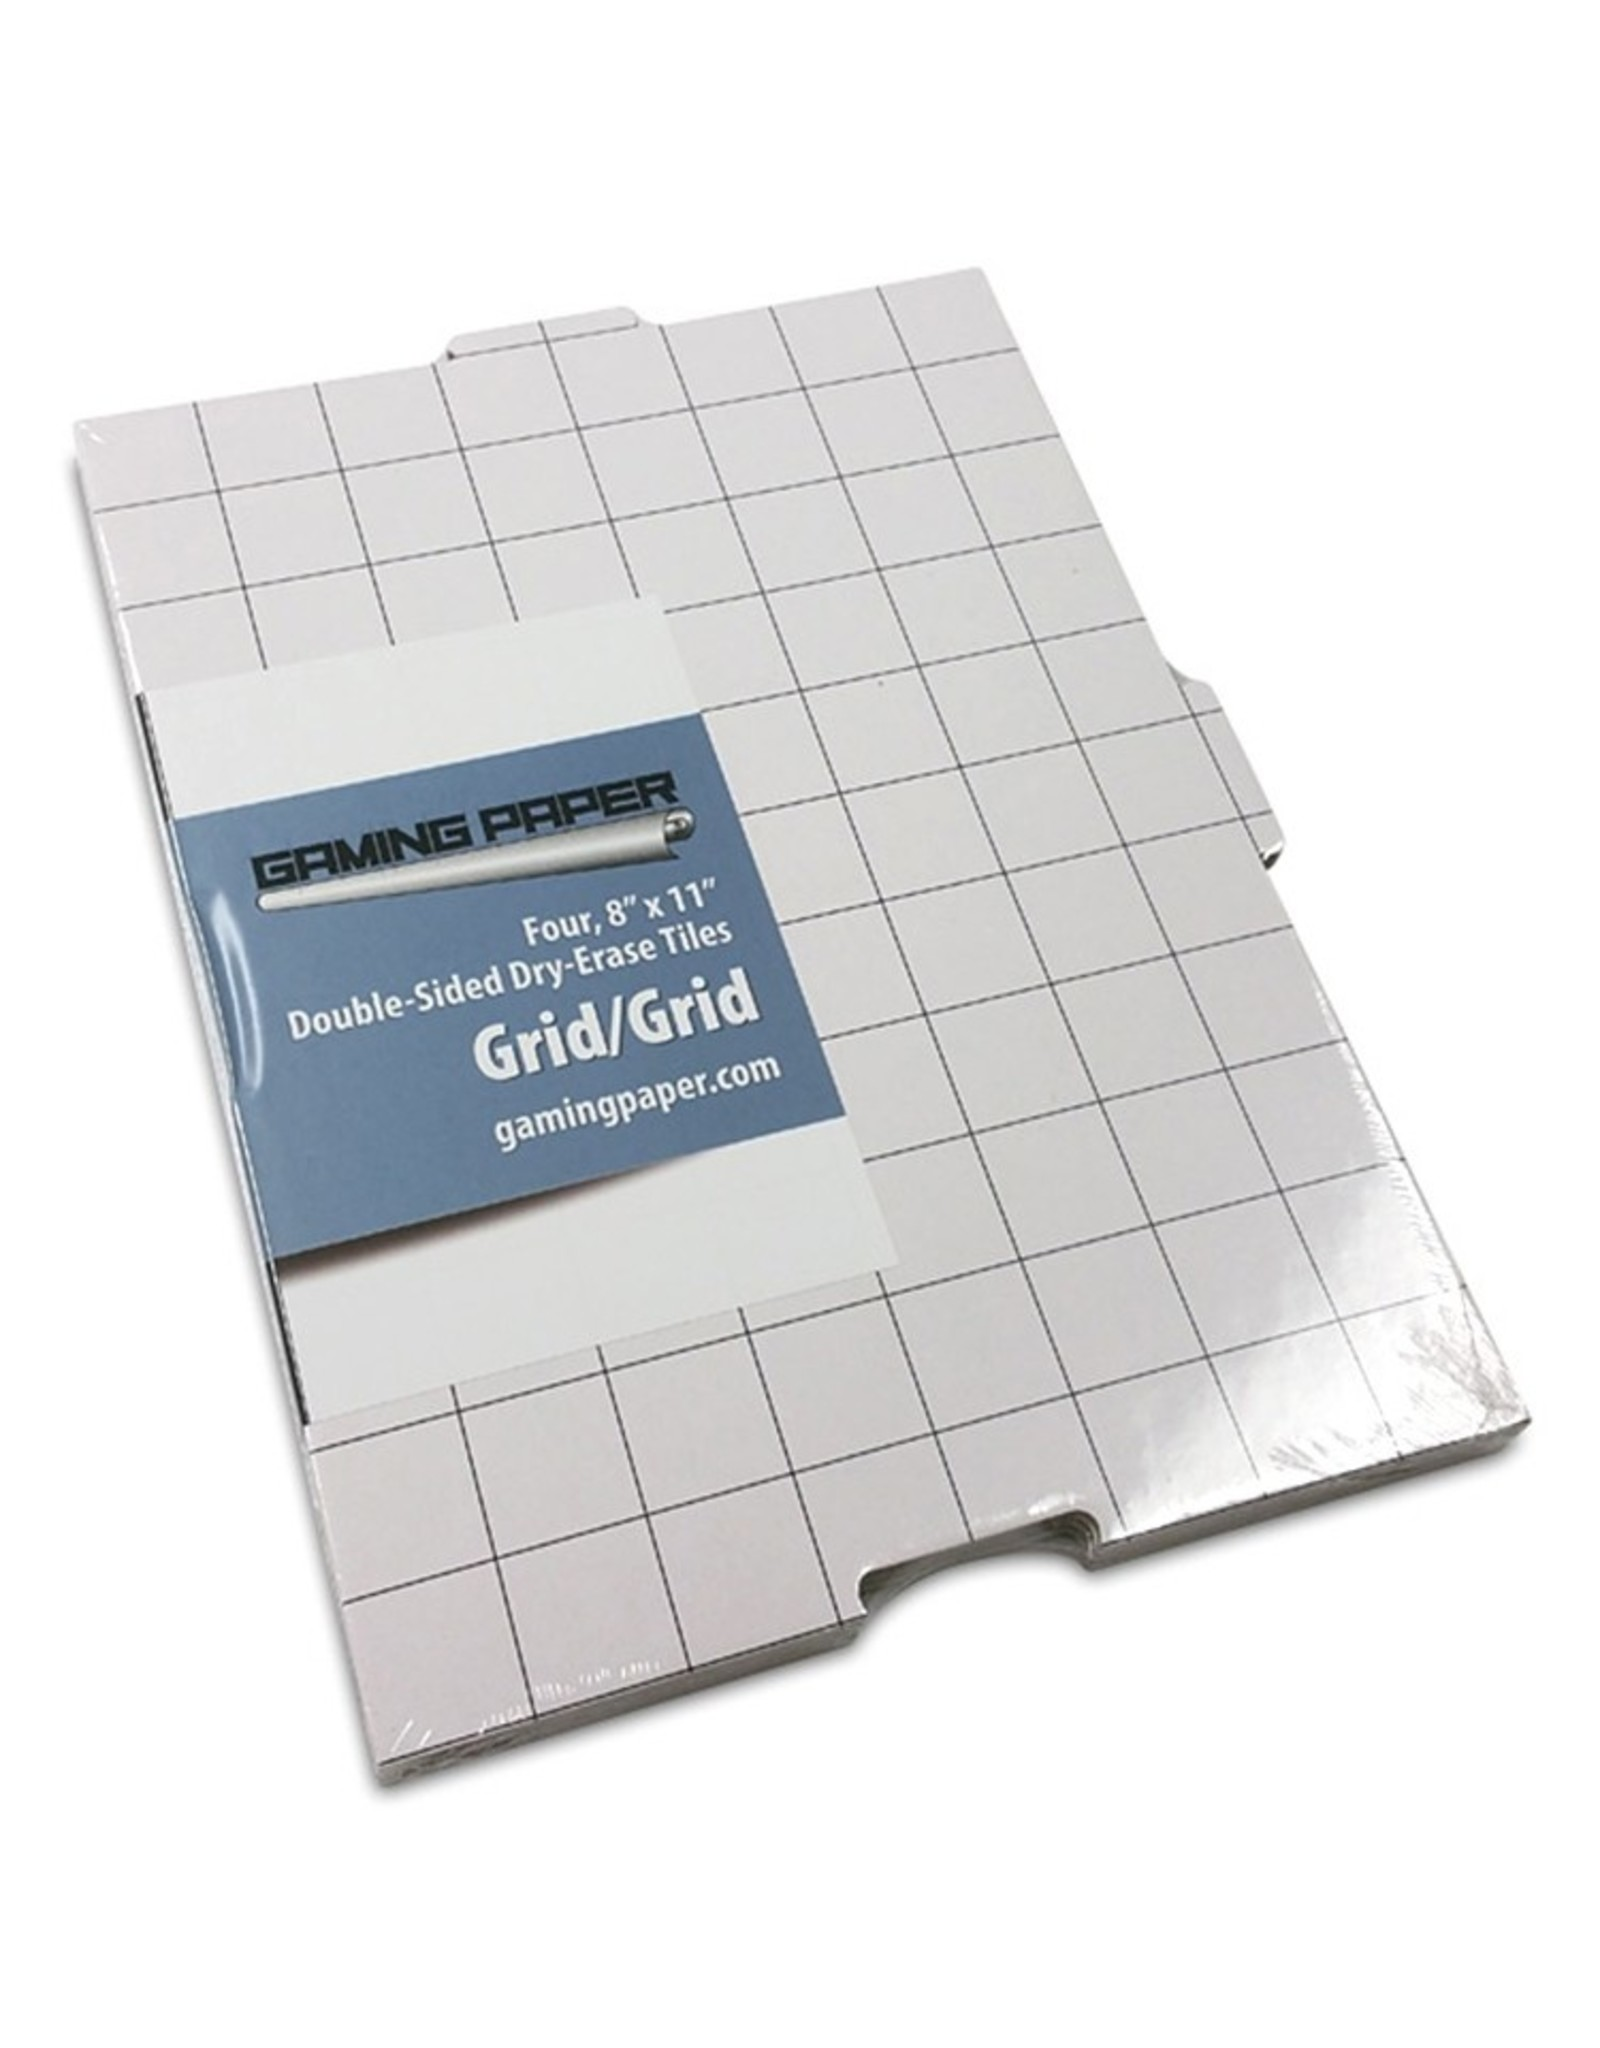 "Role Playing Gaming Paper: Tiles: Grid / Grid 8""x11"" (4)"